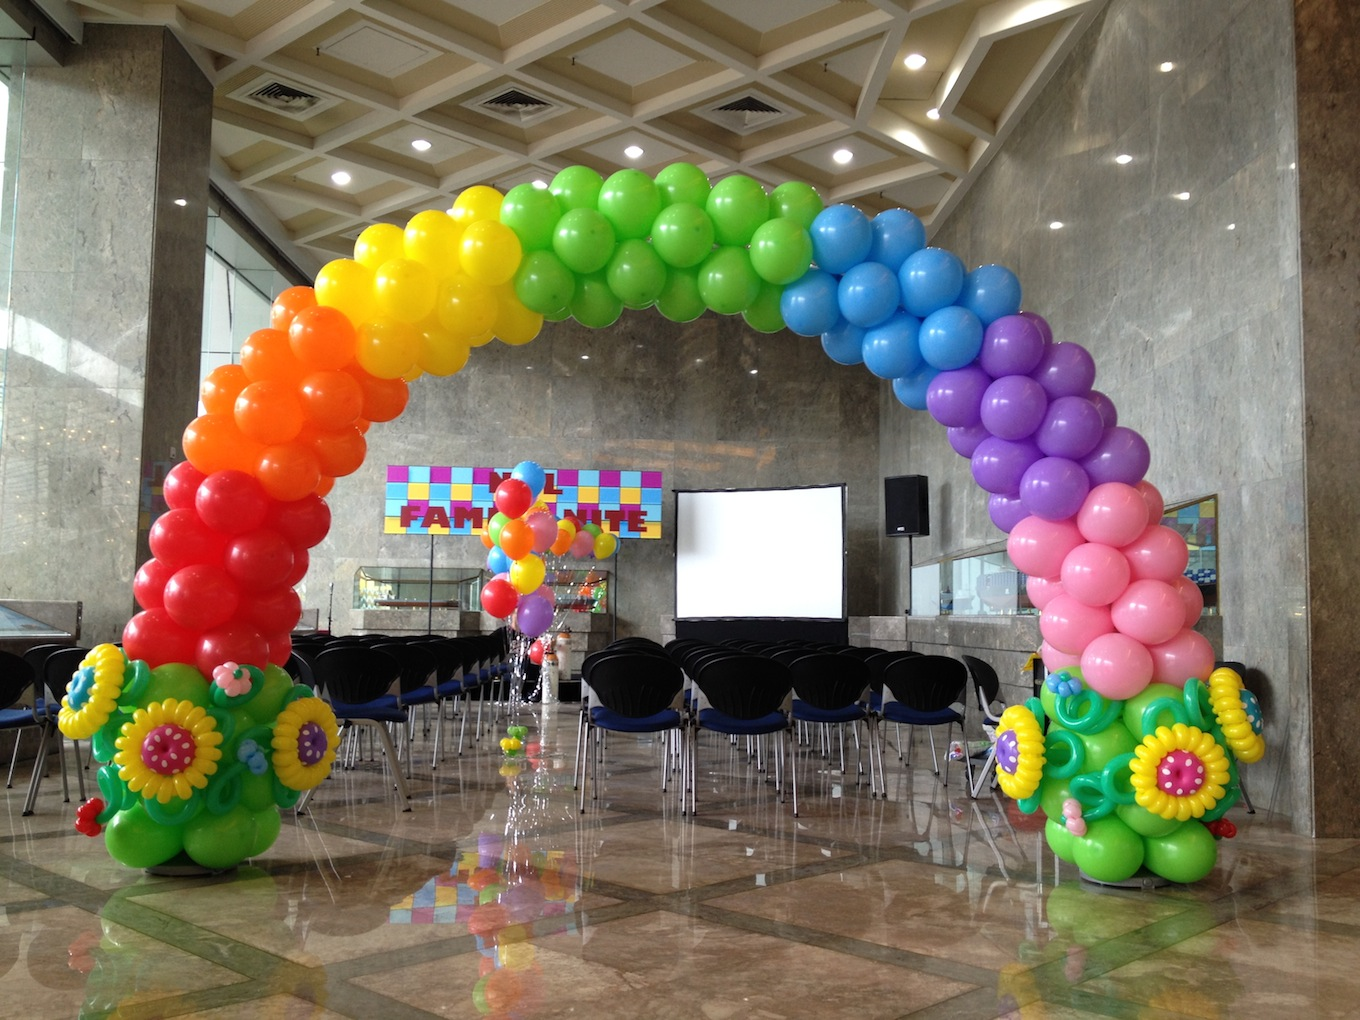 Balloon decoration ideas that balloons for Balloon decoration designs